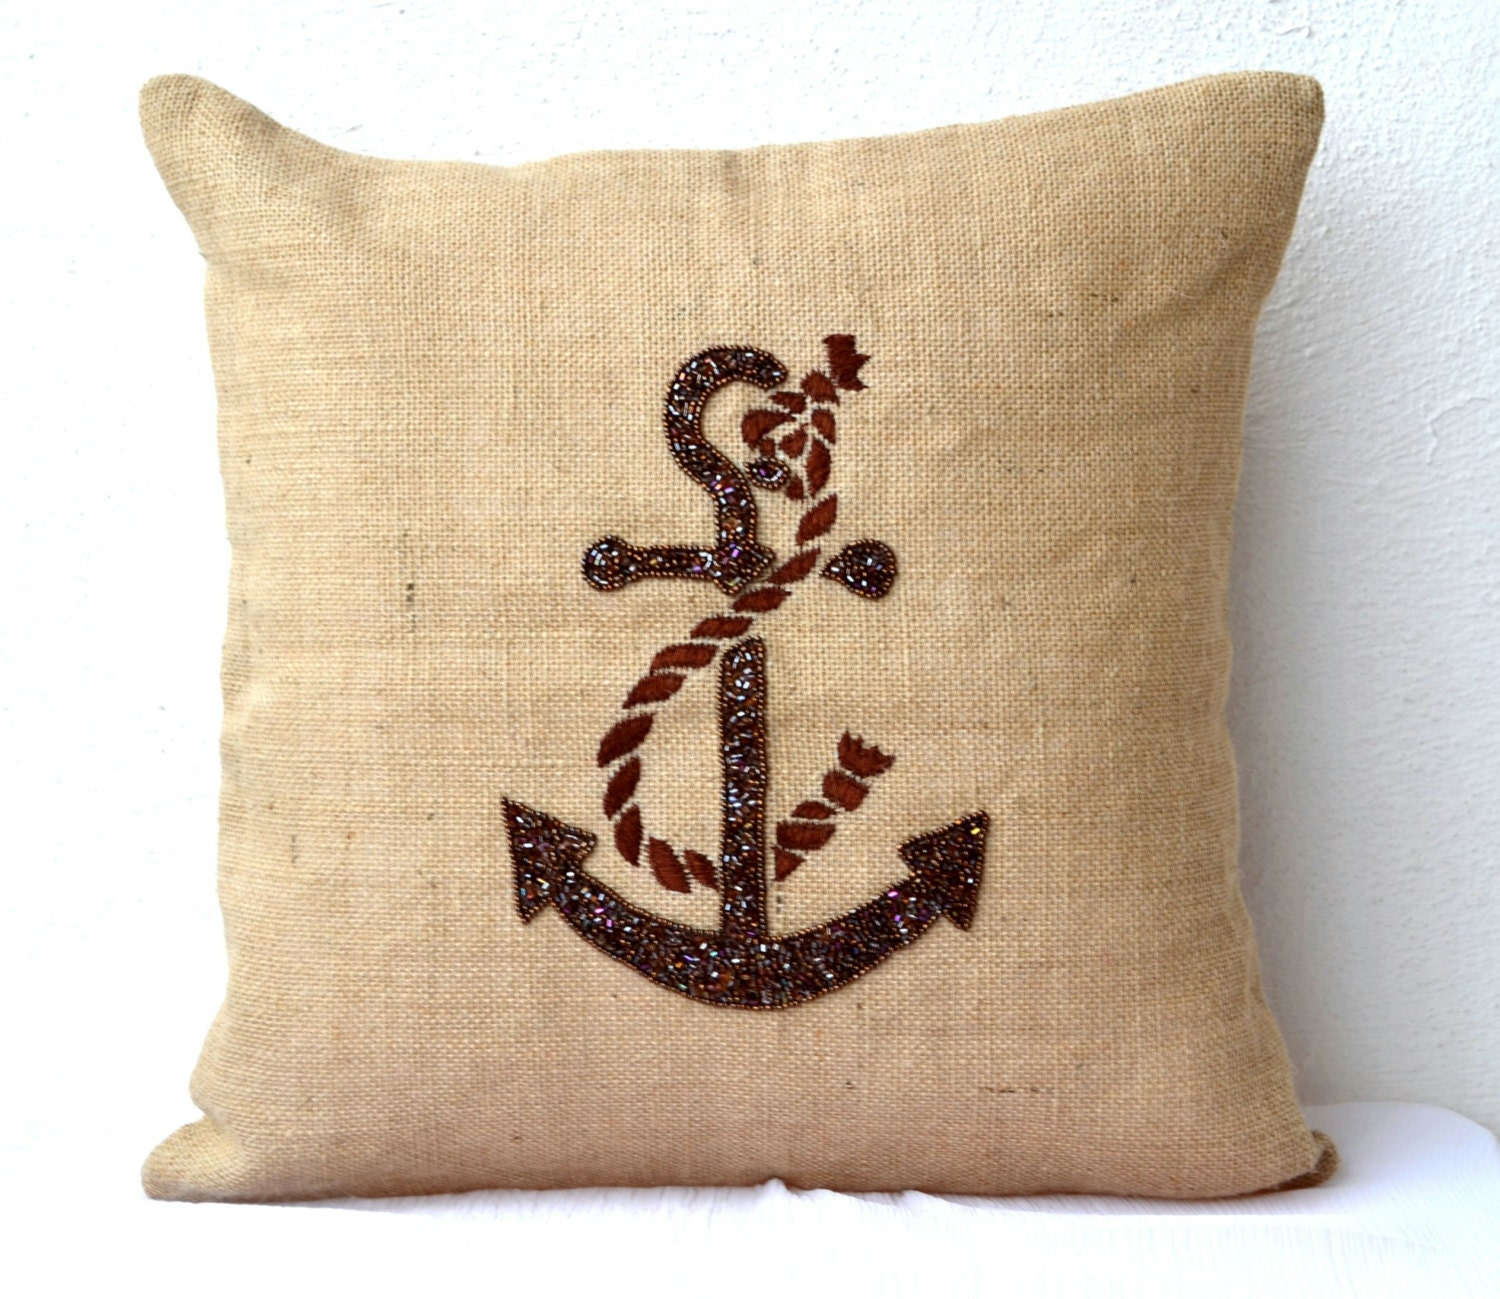 Throw Pillows Nordstrom : Anchor throw pillows Nautical pillow covers Beach by AmoreBeaute